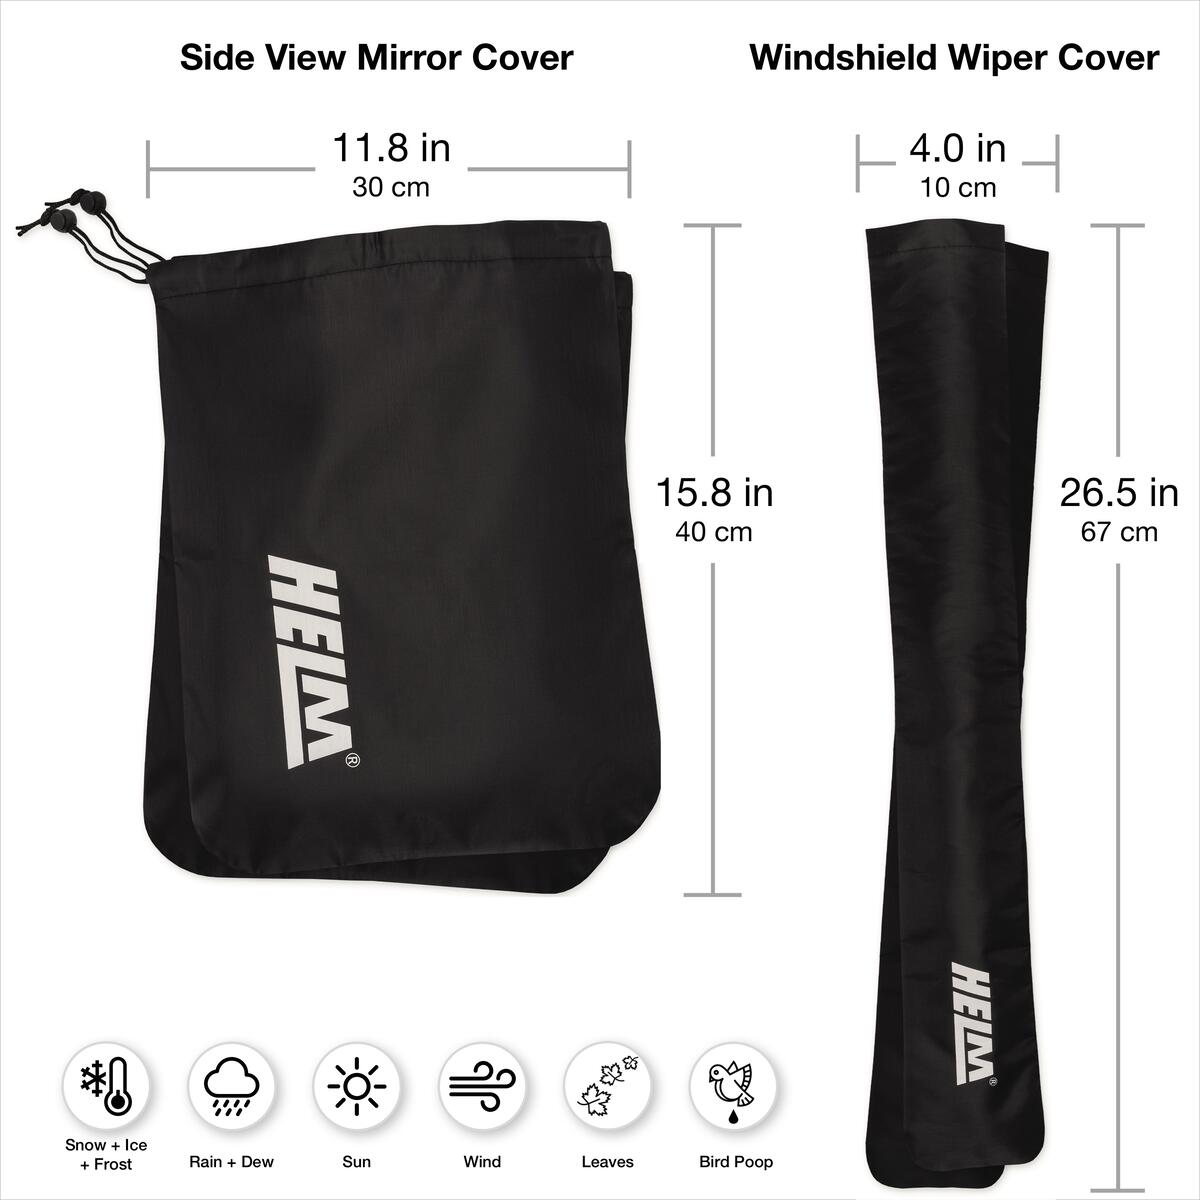 2 Pack Winter Wiper and Side Mirror Car Cover for Trucks, Cars and Vehicles. Protect from Ice Snow Frost Dew and Rain.